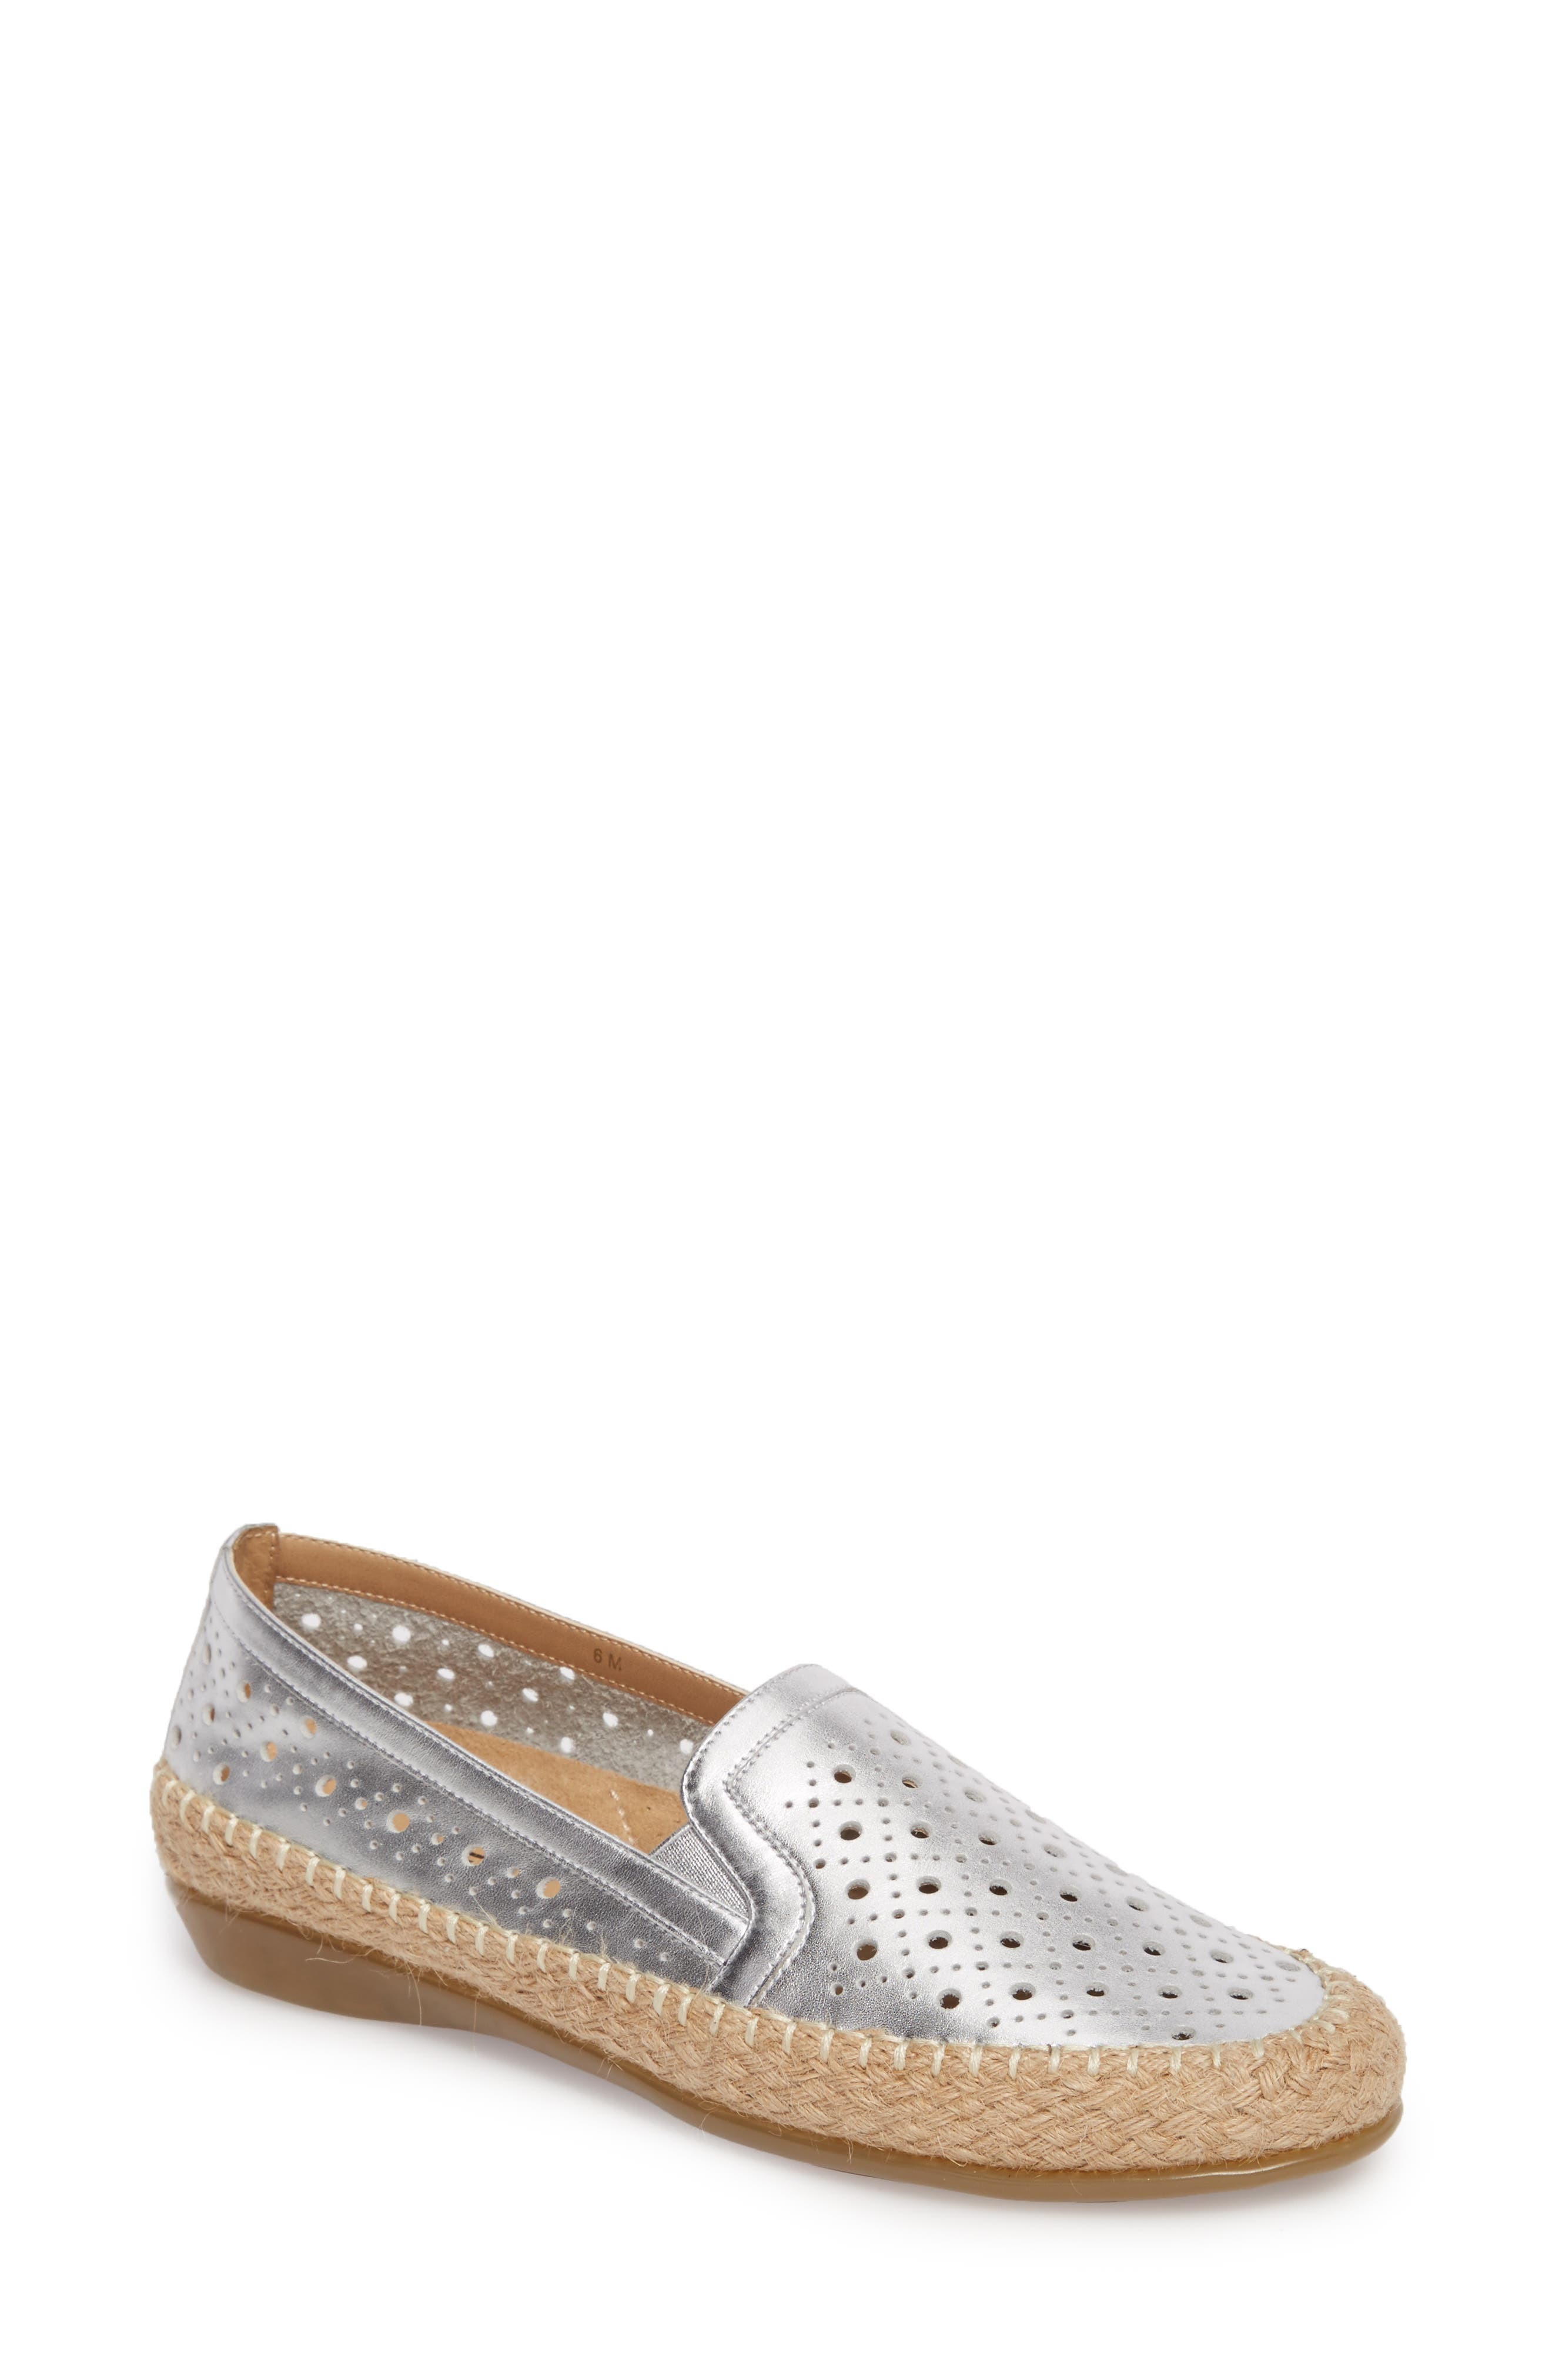 VANELi Nicki Perforated Espadrille Flat (Women)